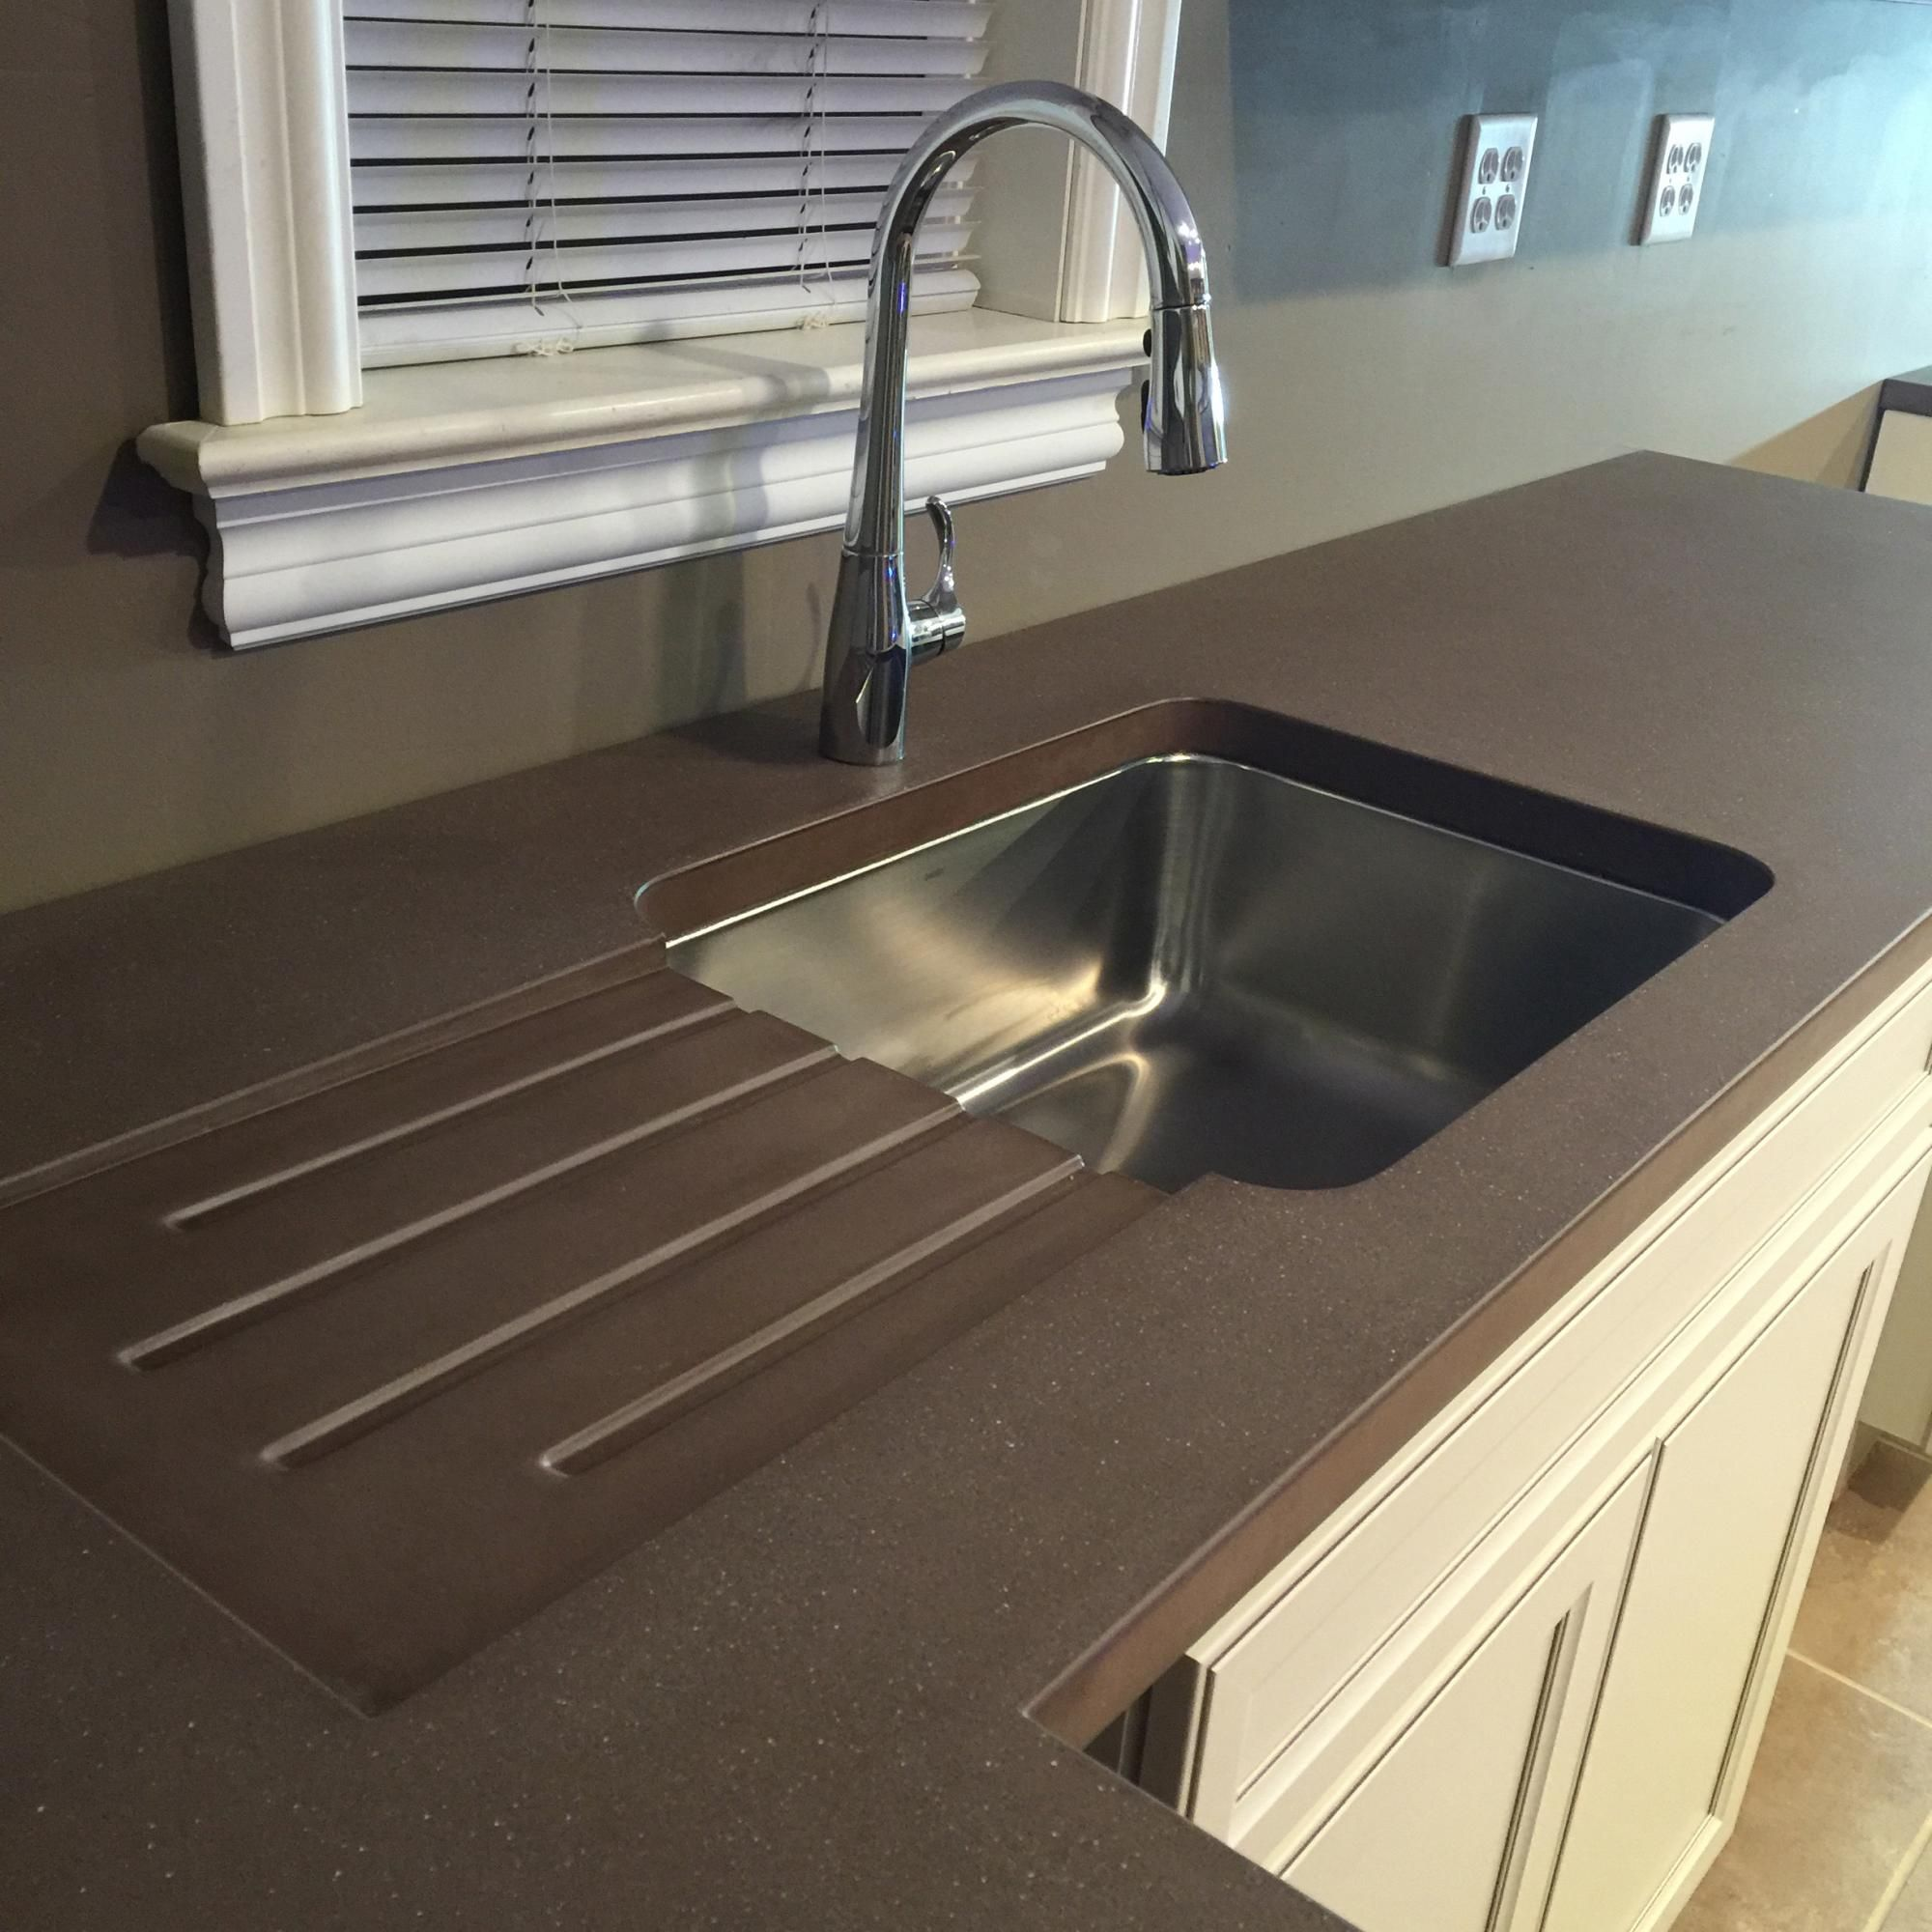 Concrete Countertops New Jersey Concrete Sinks Concrete Design Concrete Countertops Kitchen Concrete Kitchen Stained Concrete Countertops